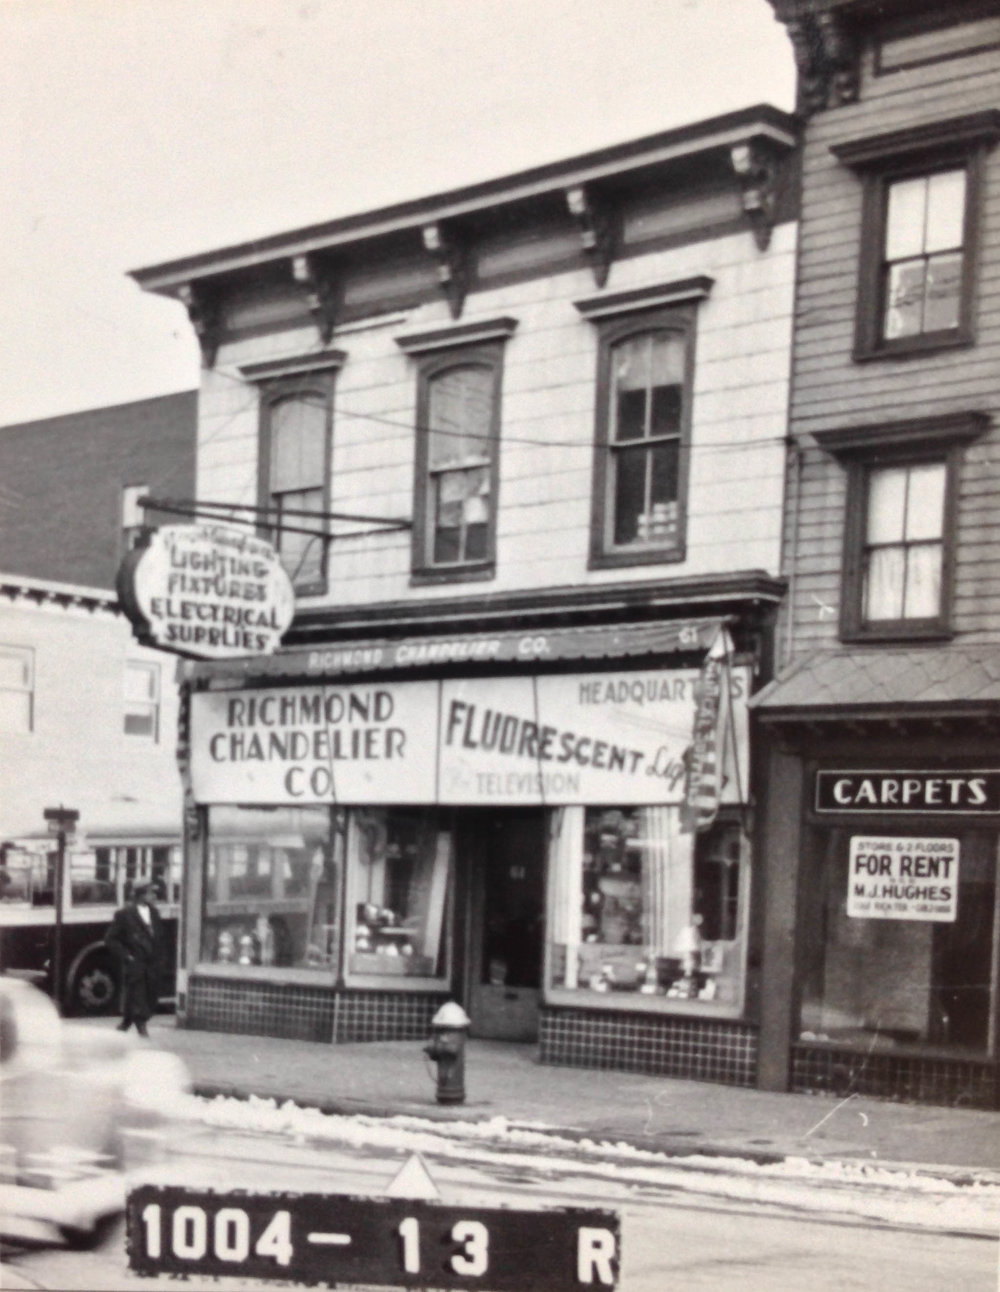 61 Richmond Avenue, Staten Island, circa 1940. Richmond Chandelier opened in 1926, selling lighting fixtures and electoral supplies, and is still there today. Department of Finance Collection, NYC Municipal Archives.